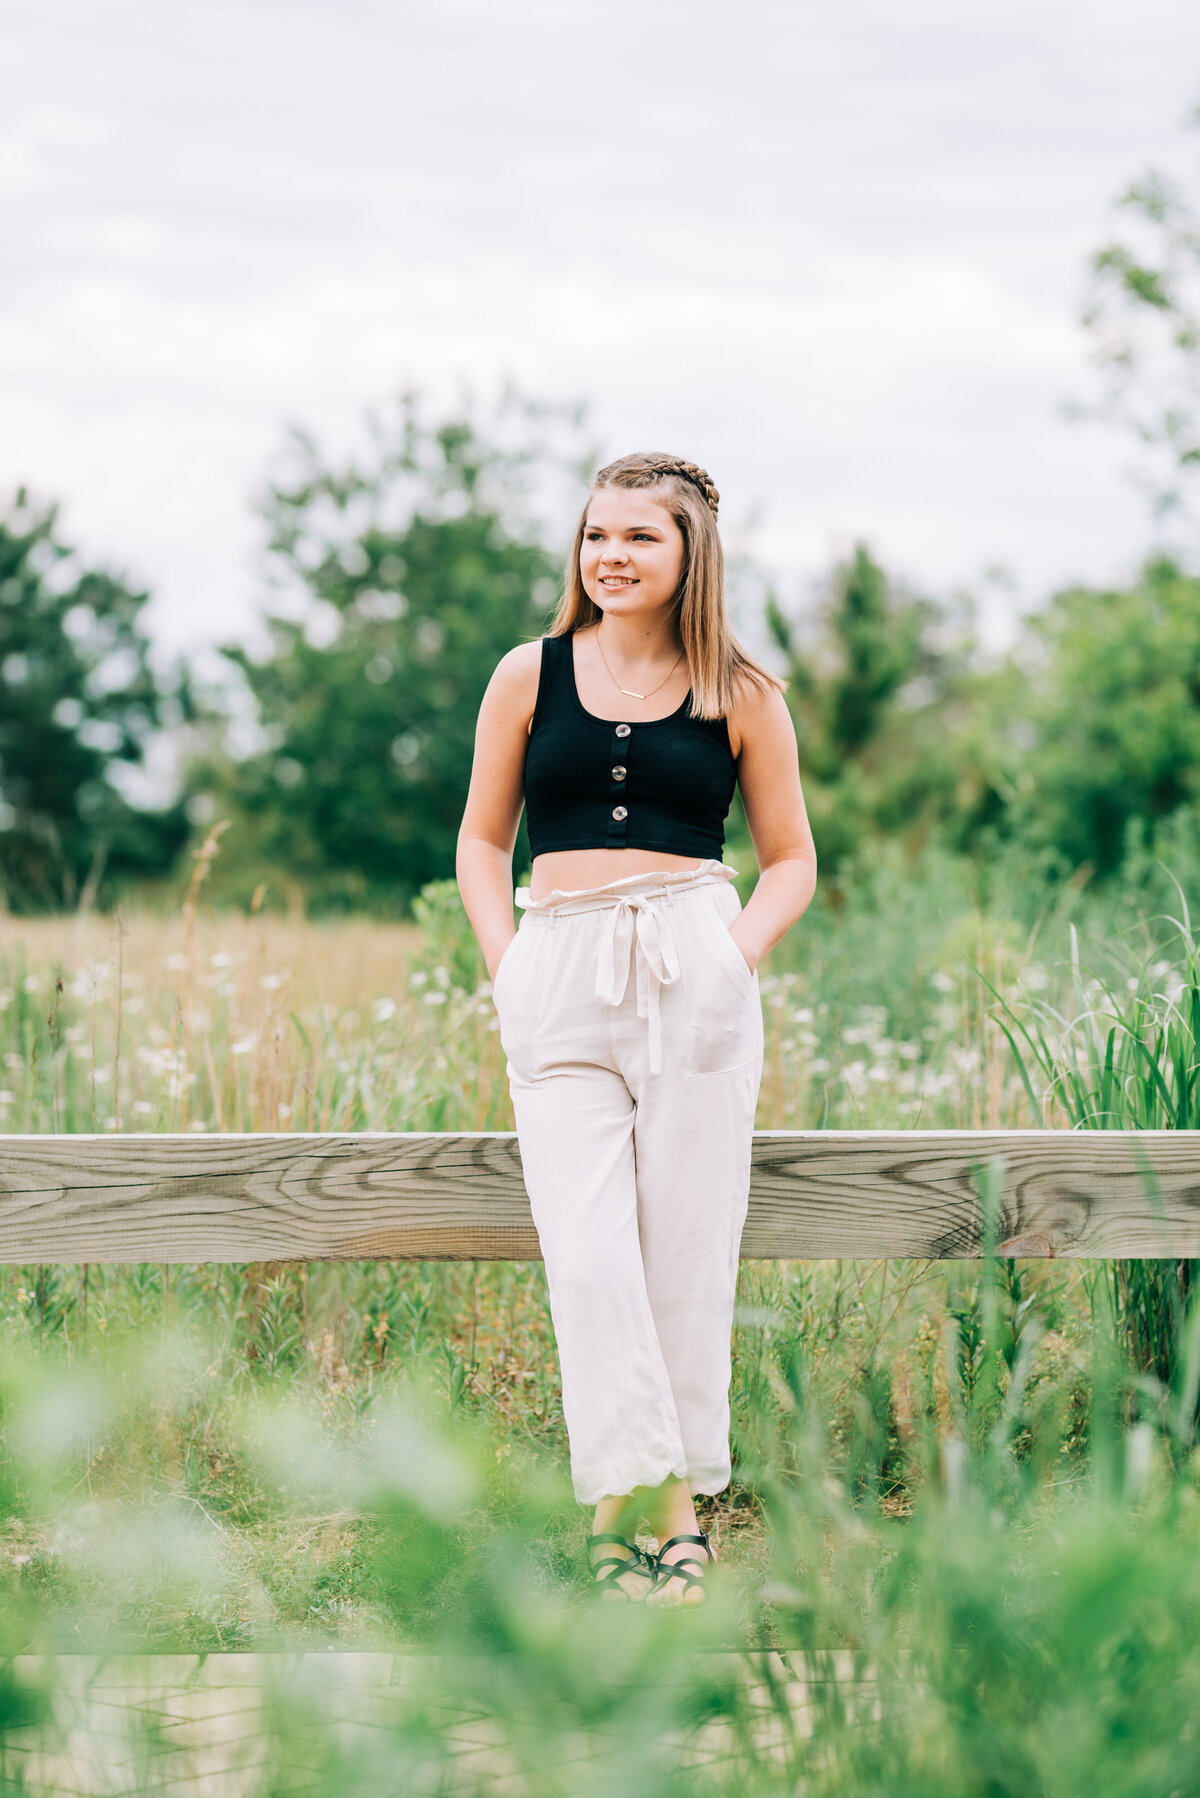 Delaney June Senior Portraits 2020 Leah Baggett Photography Pleasure House P-3